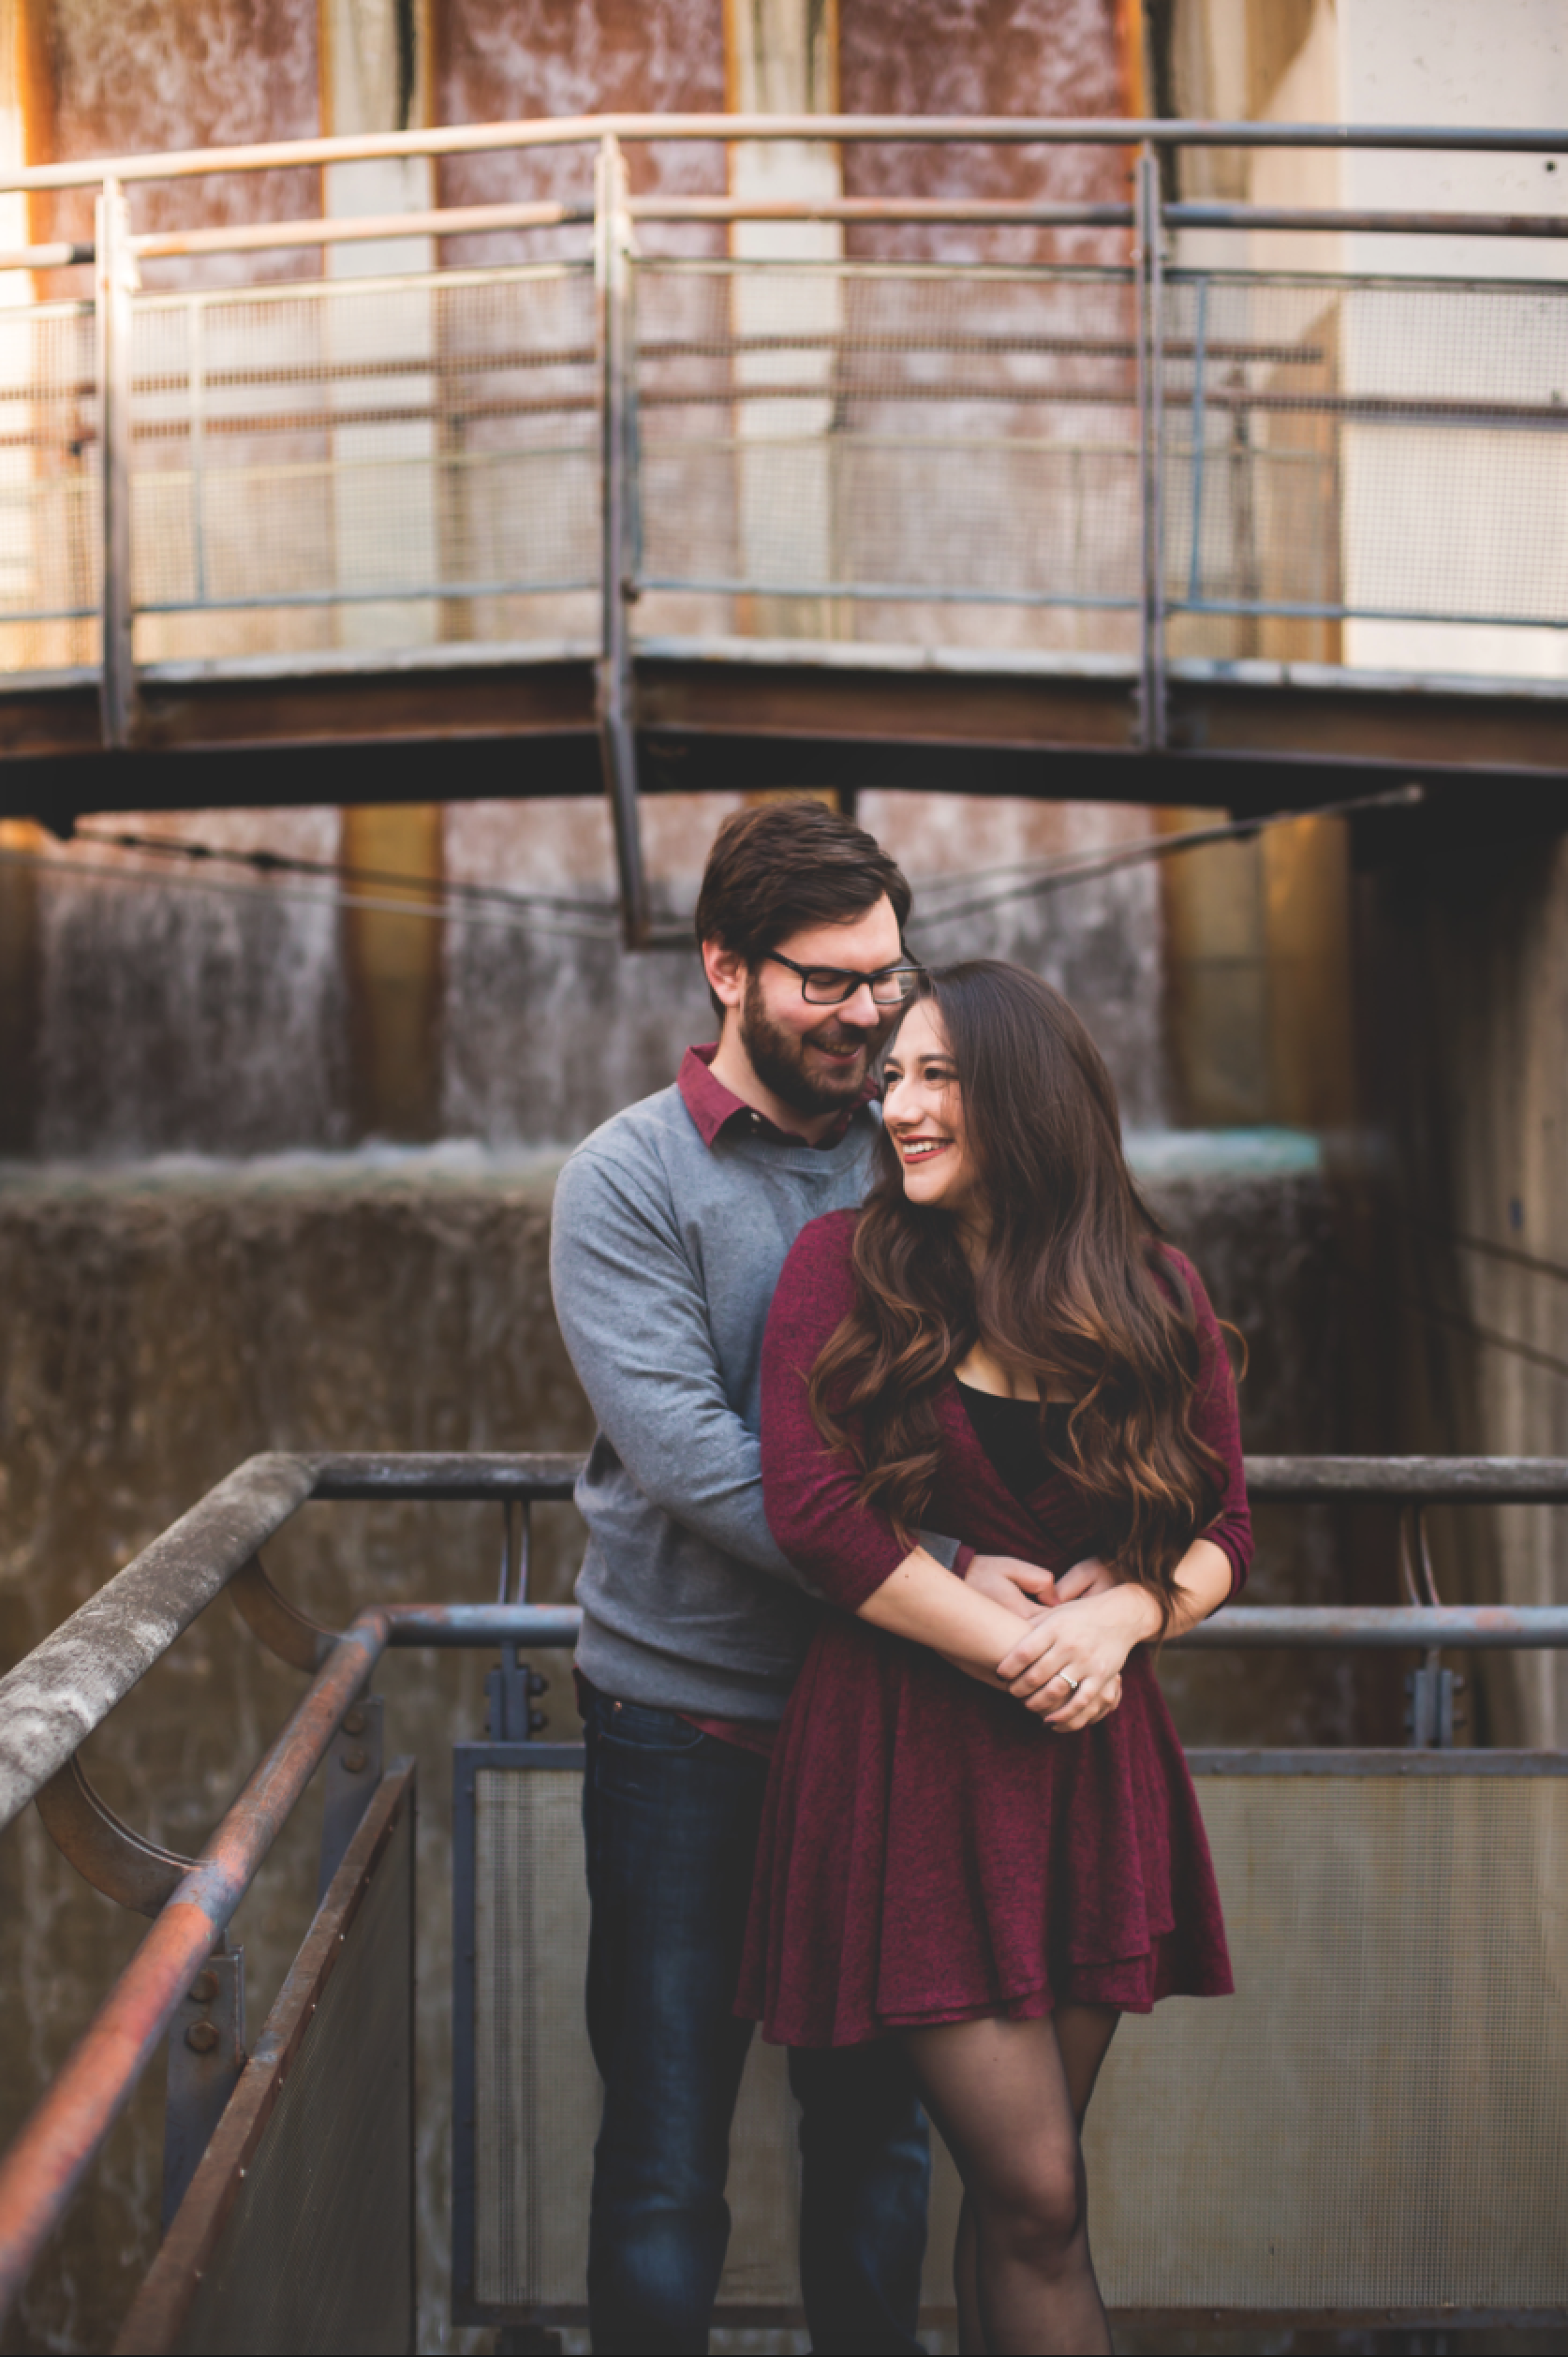 Engagement-Session-Hamilton-Burlington-Oakville-Niagara-Toronto-Wedding-Photographer-Engaged-Photography-Urban-Engaged-Downtown-Golden-Hour-Moments-by-Lauren-Photo-Image-2.png